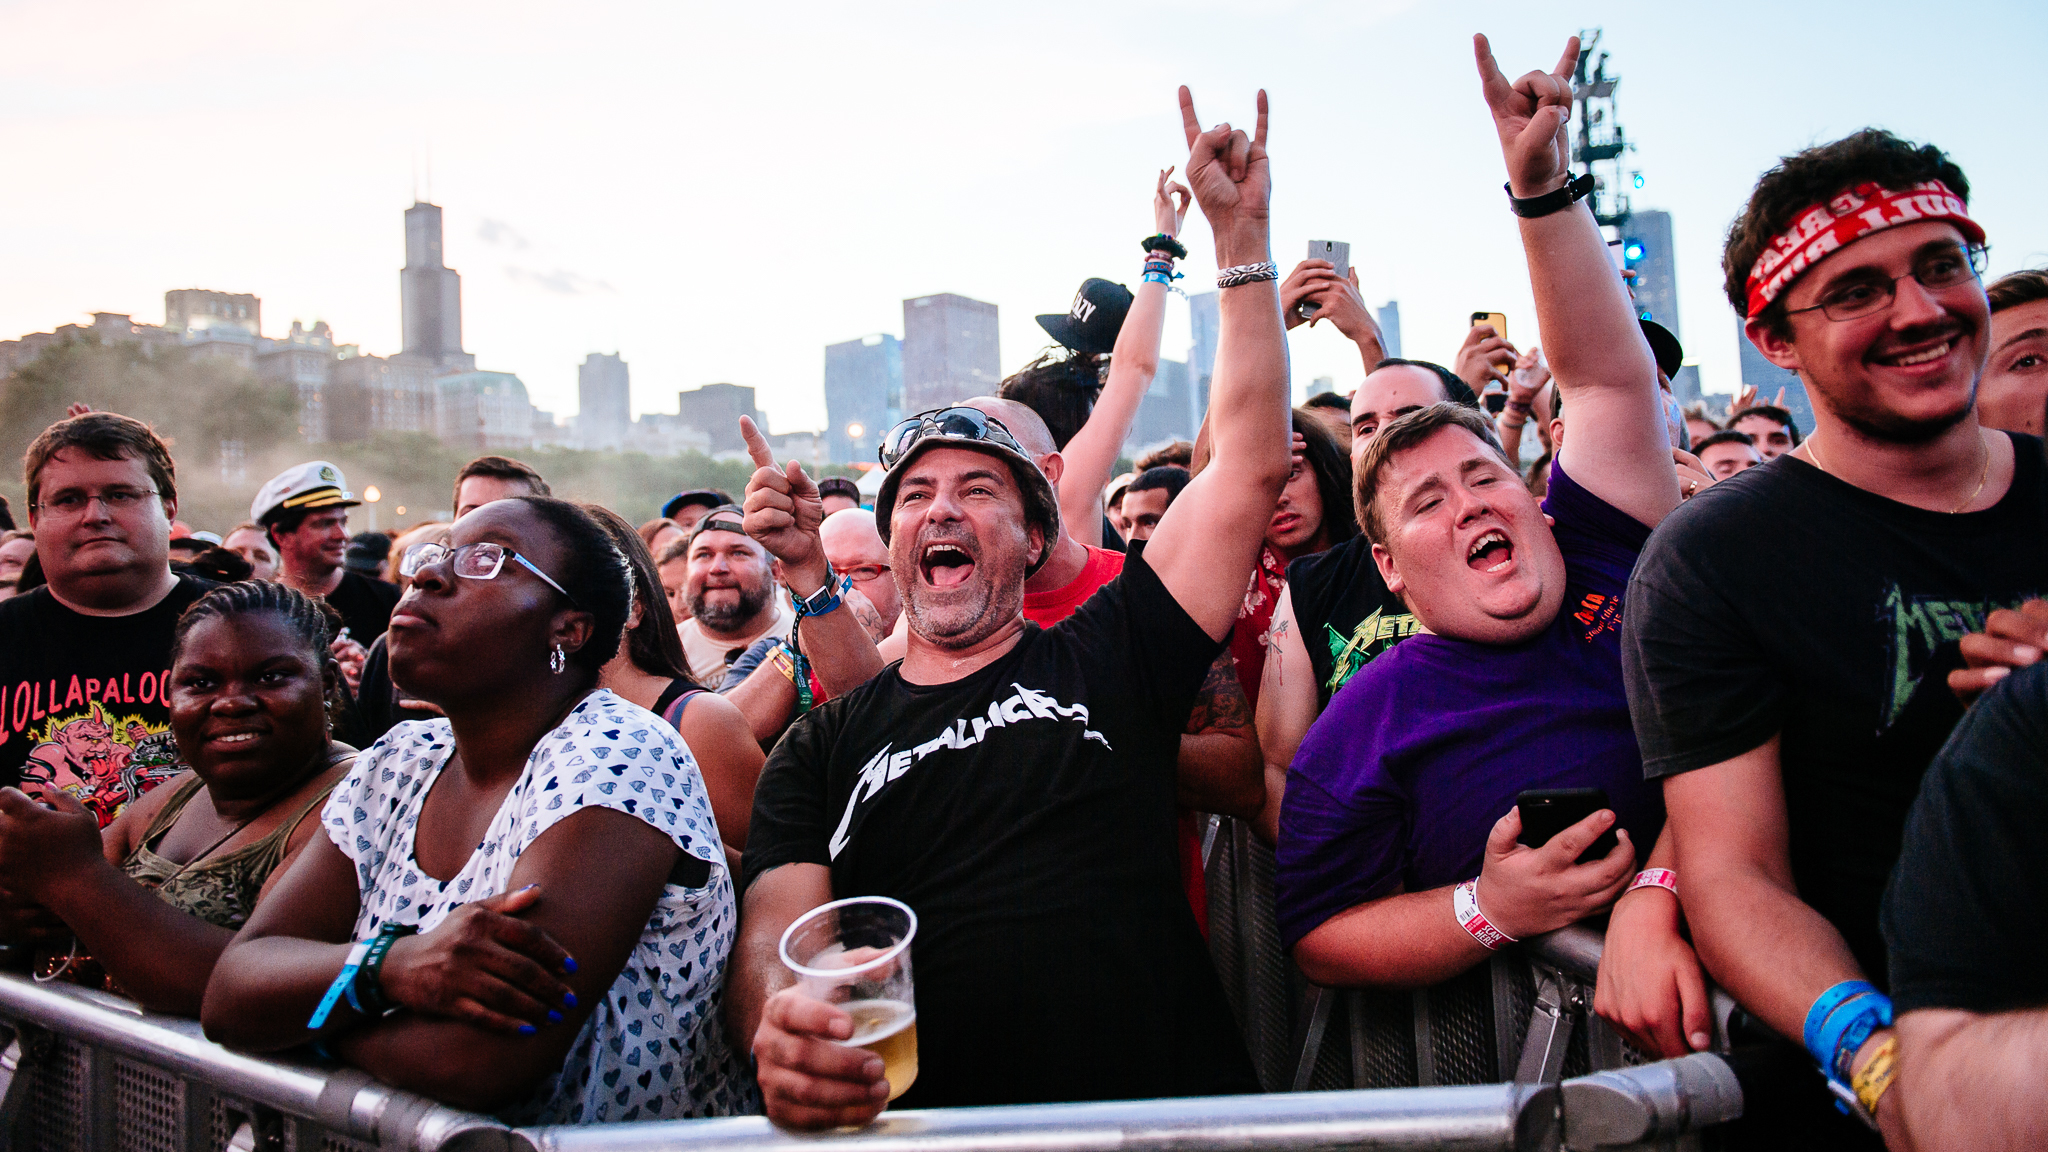 Lollapalooza 2015, Saturday: Faces in the crowd